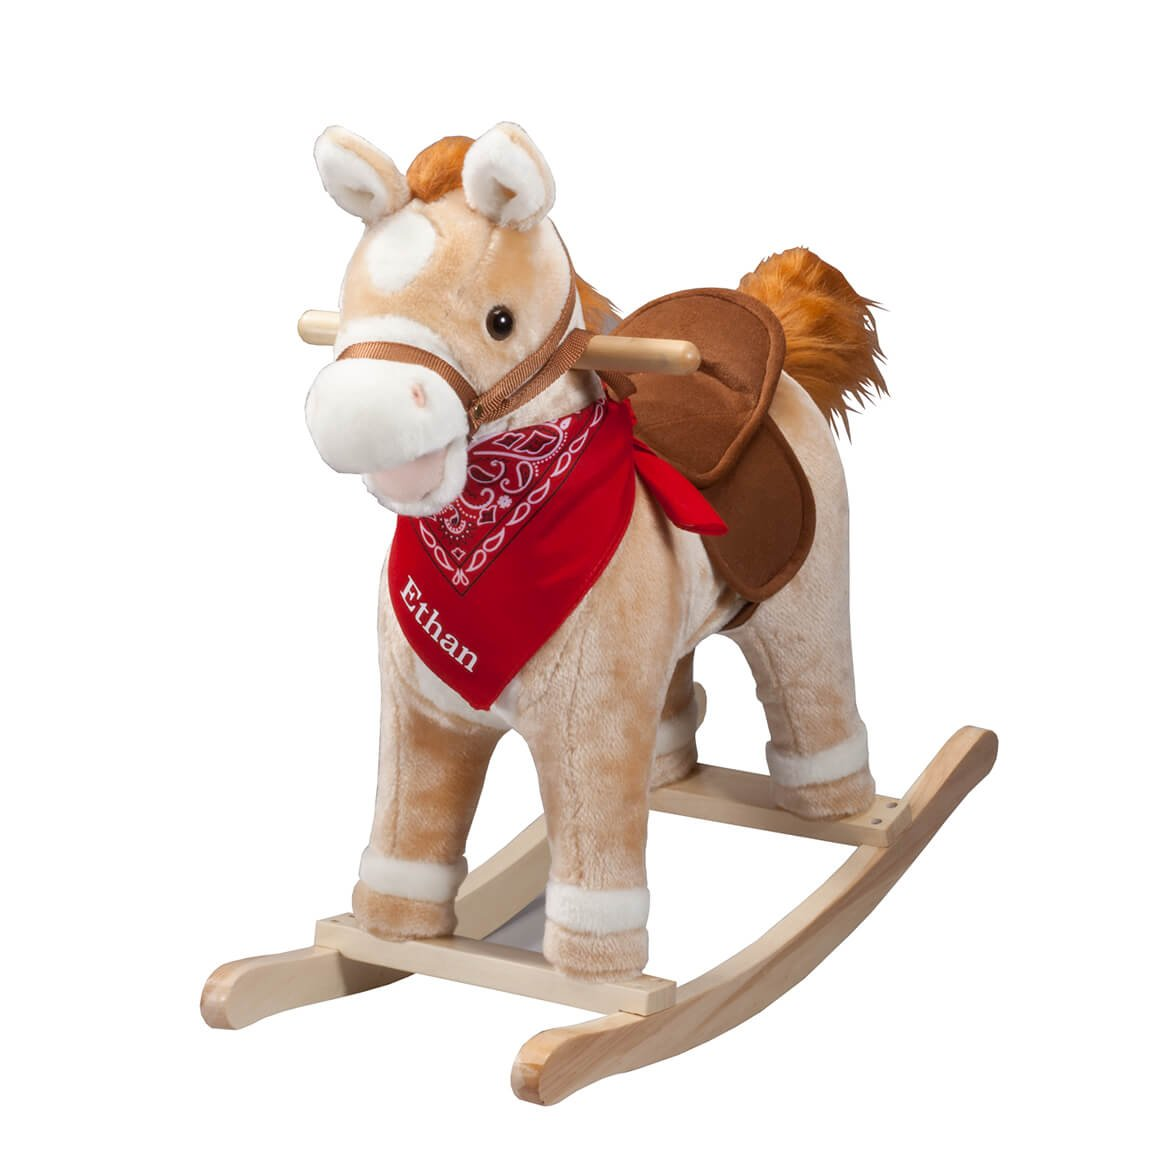 Fox Valley Traders Personalized Animated Rocking Horse with Sound